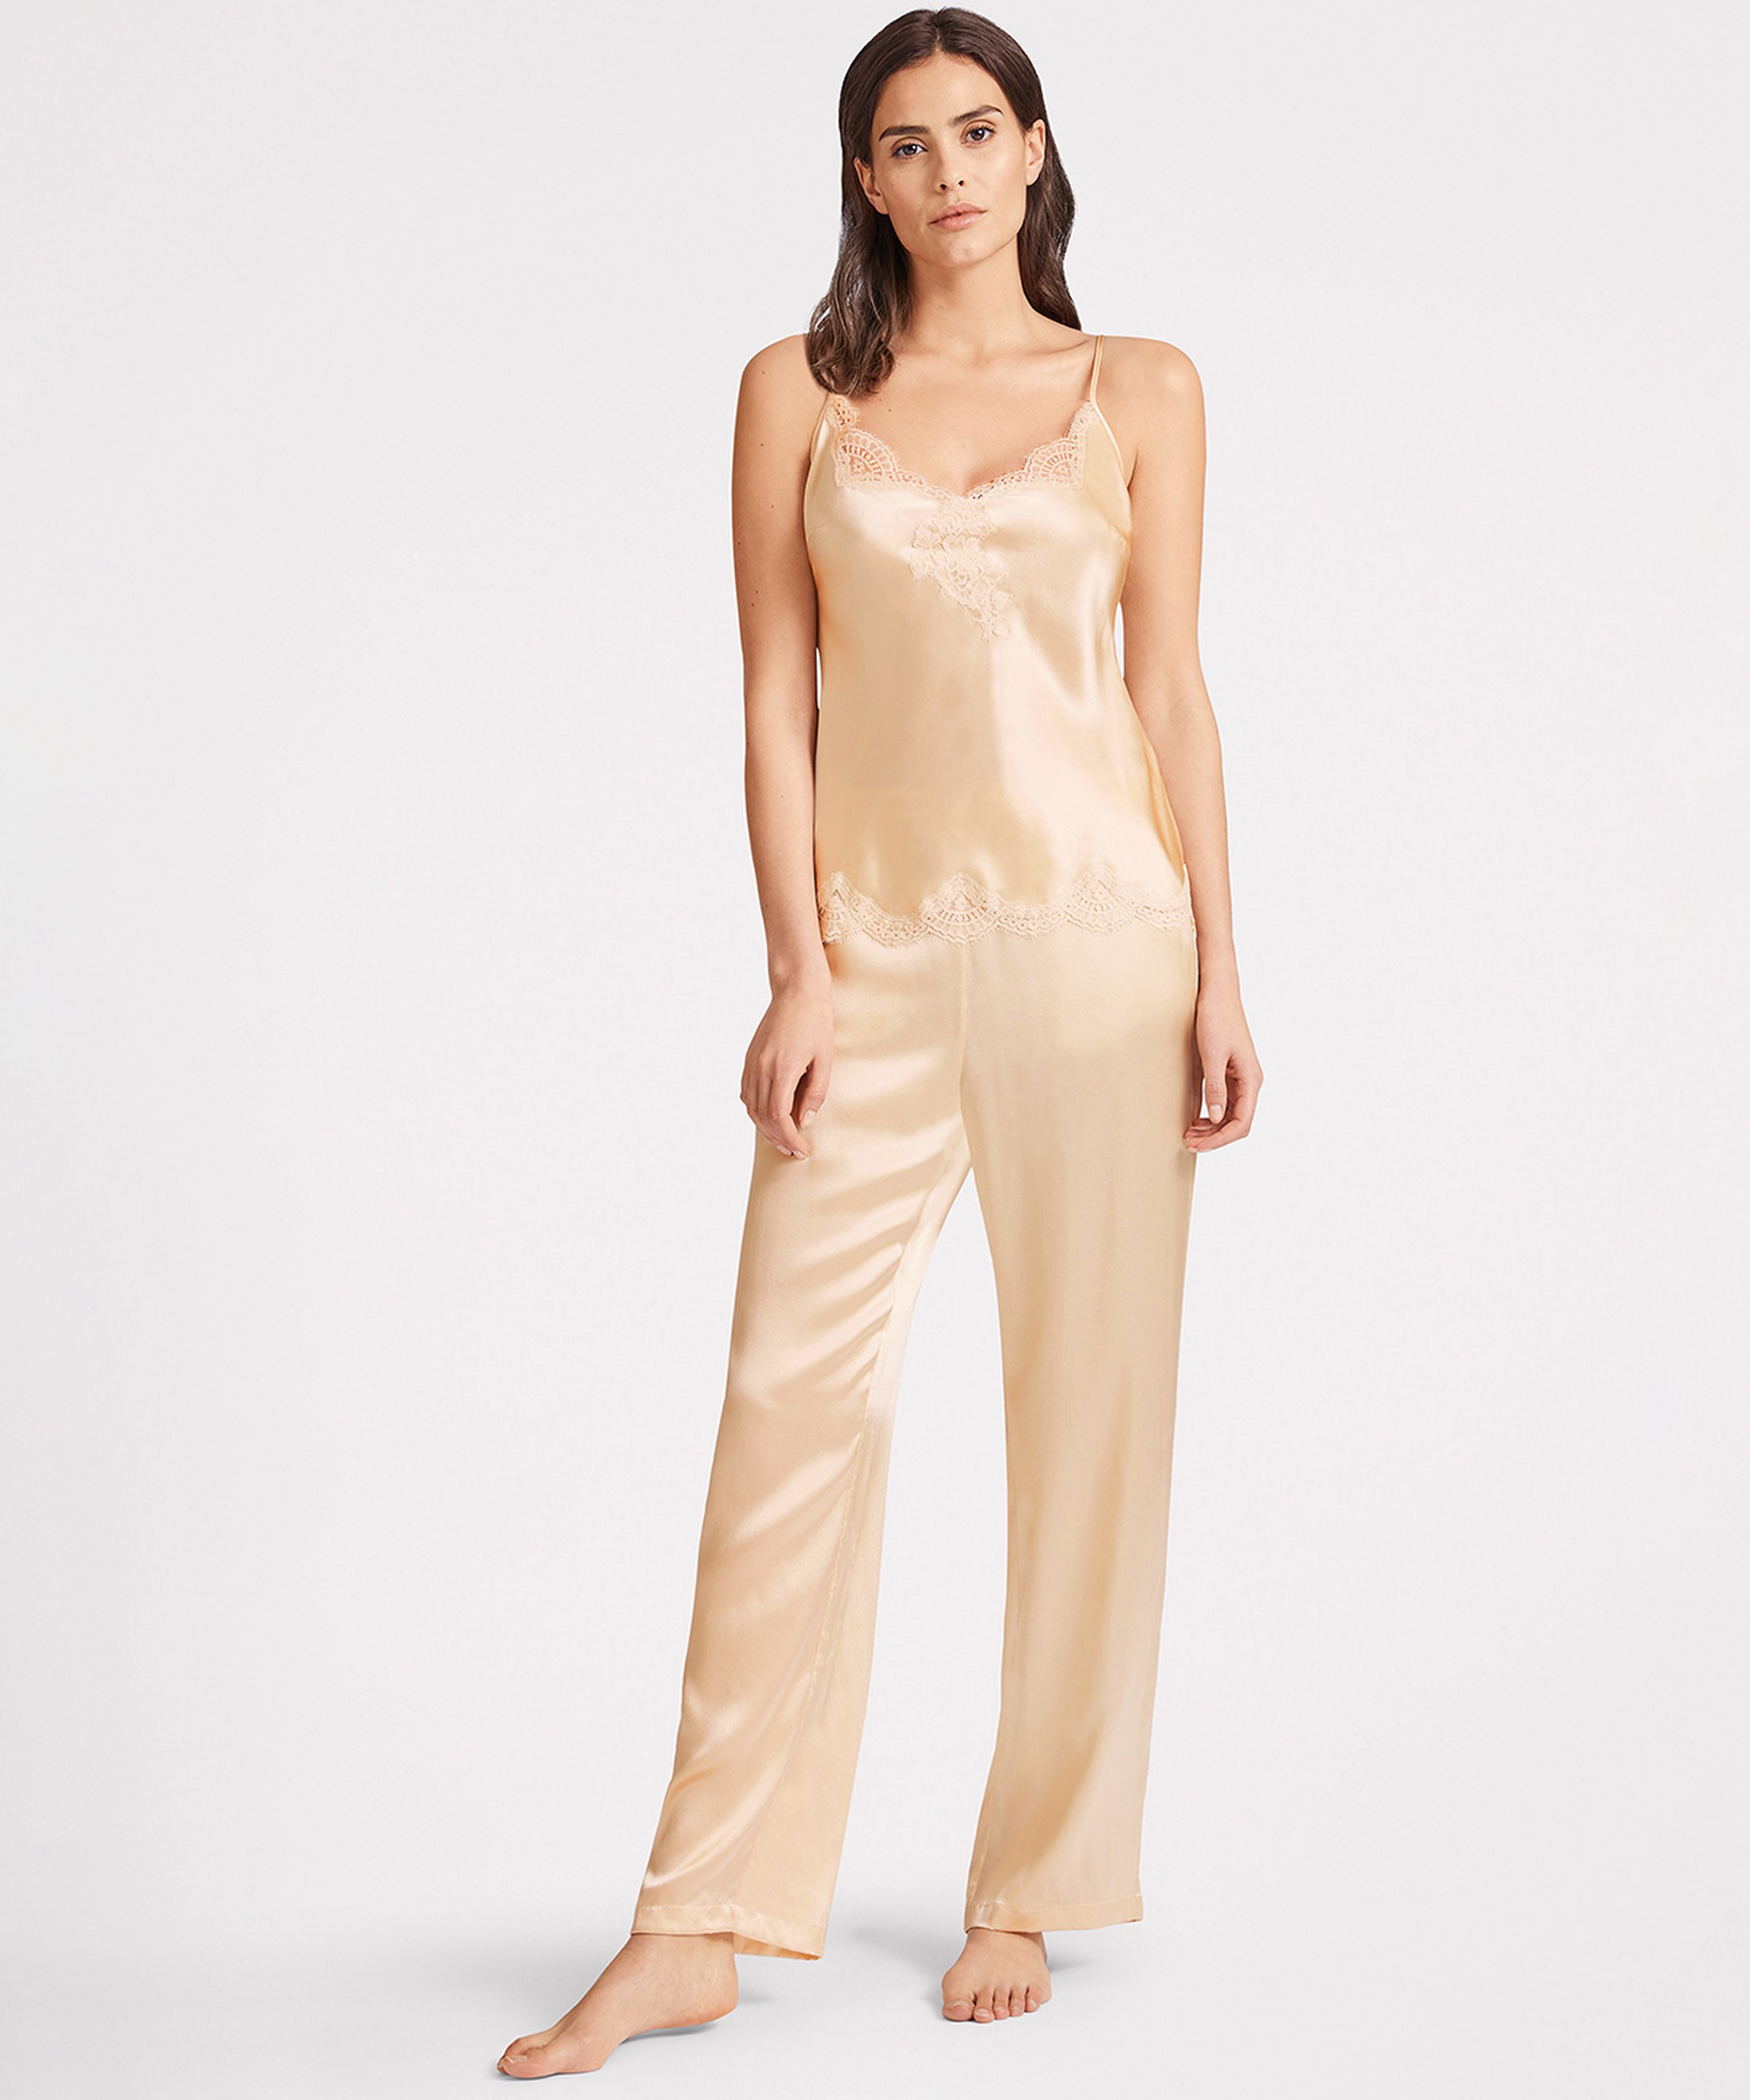 TOI MON AMOUR Silk Pants Pearly white Blond | Aubade